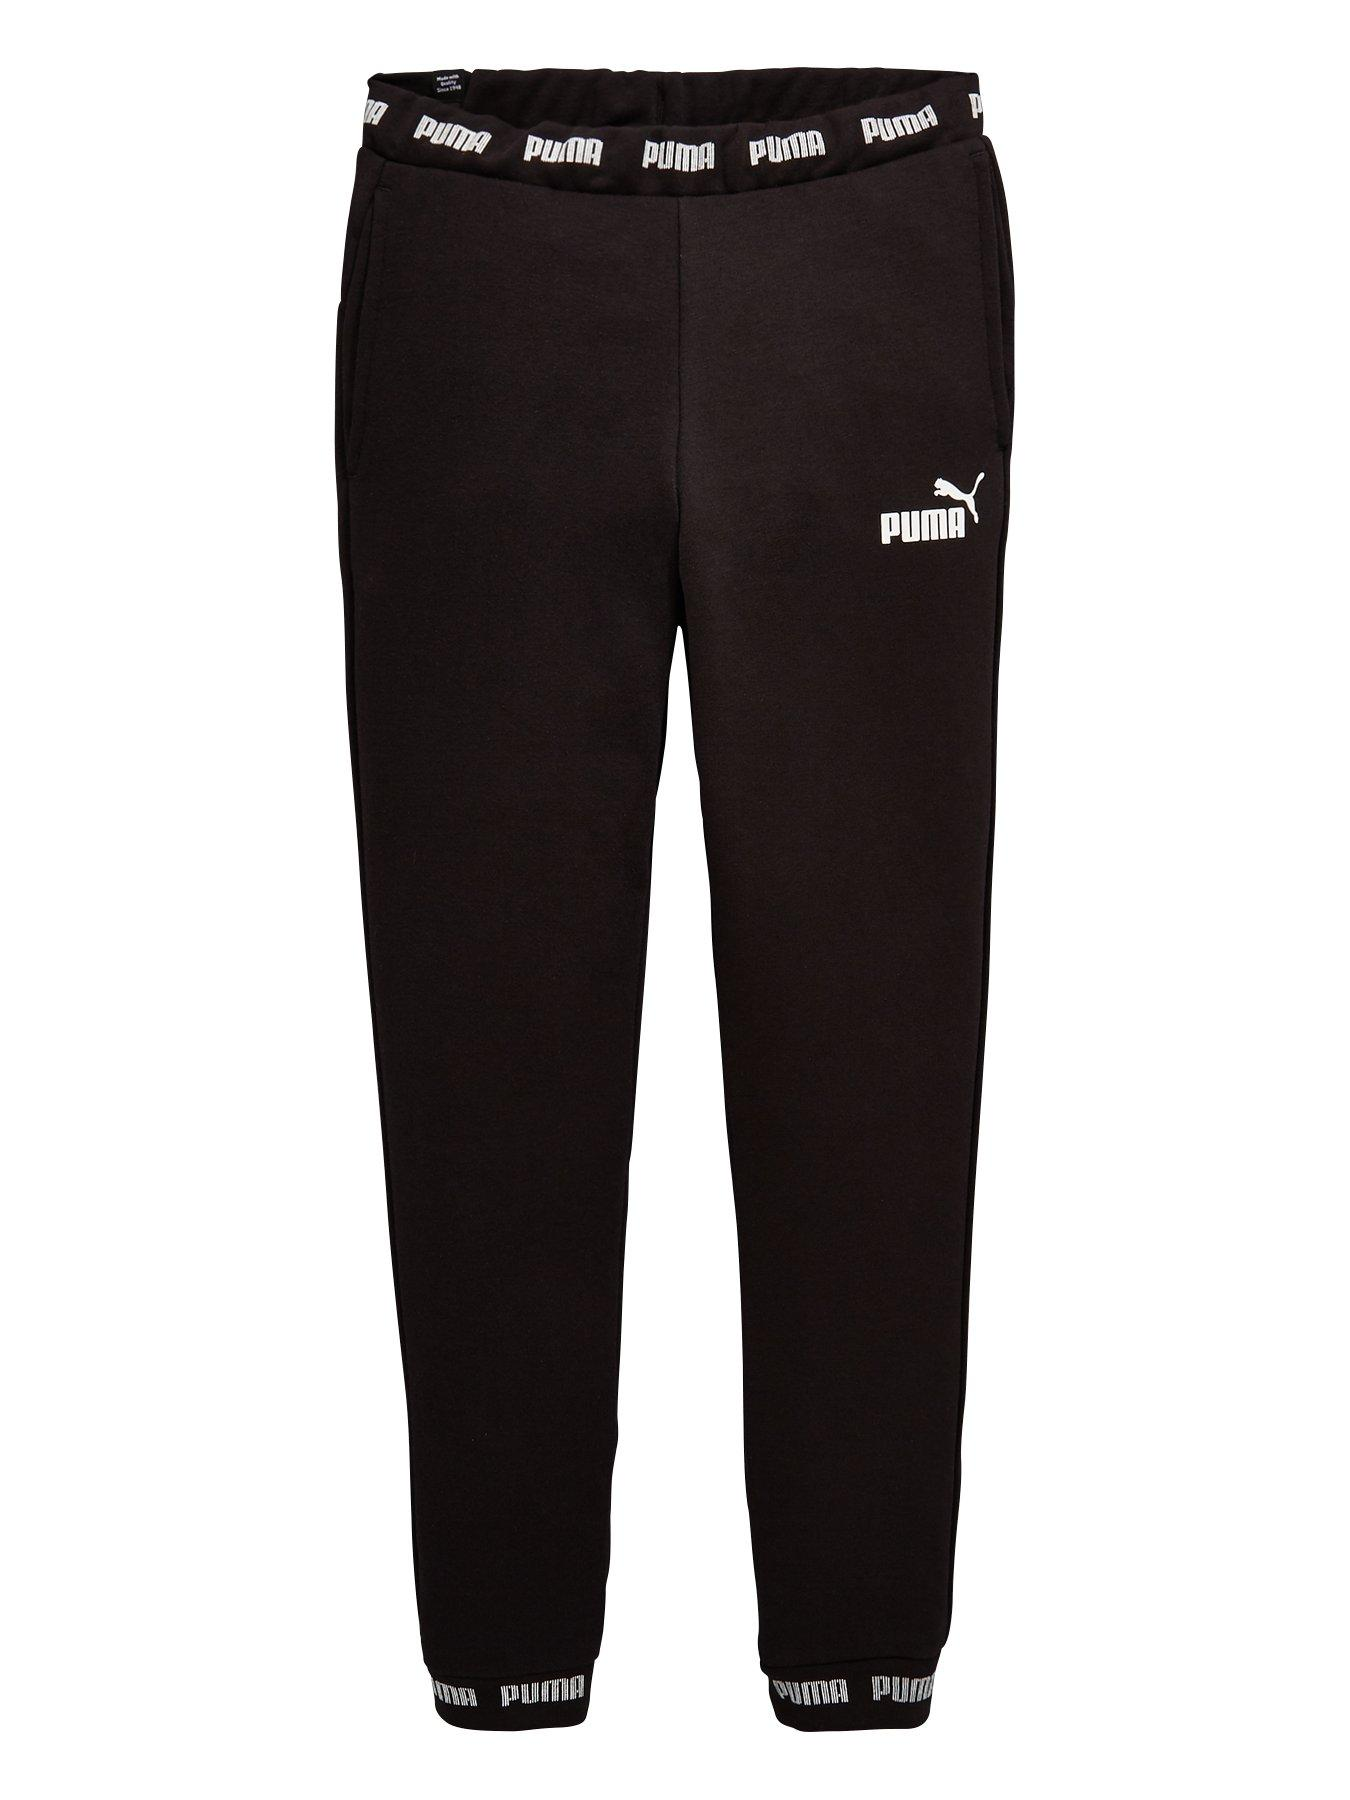 Puma Amplified Womens Ladies Sports Fitness Legging Black Clothing, Shoes & Accessories Clothing & Accessories